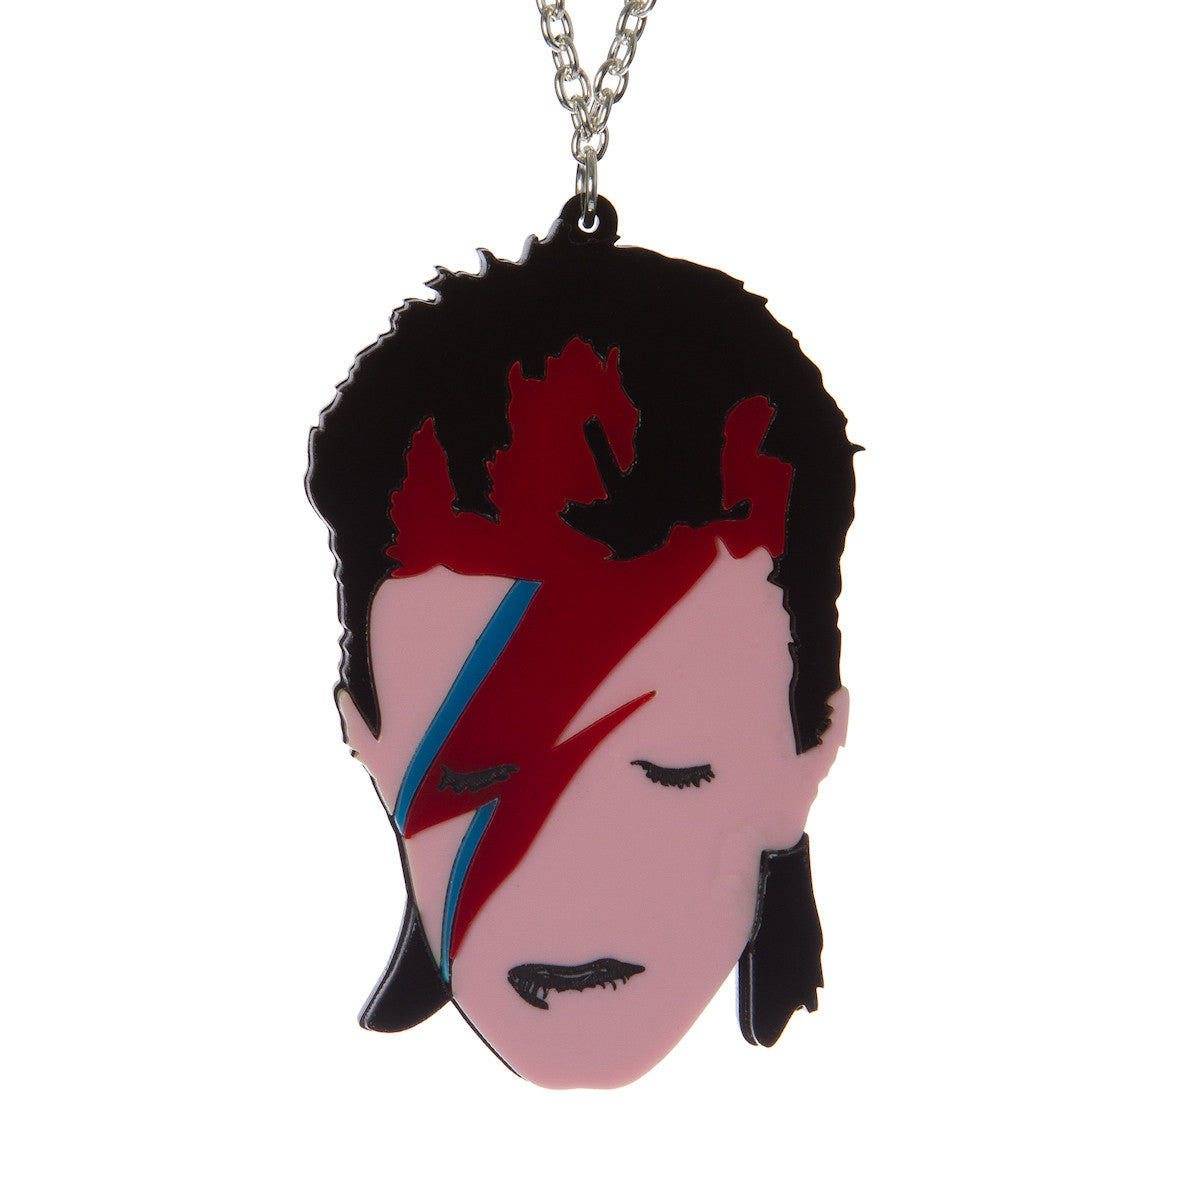 Sugar & Vice Aladdin Sane Necklace